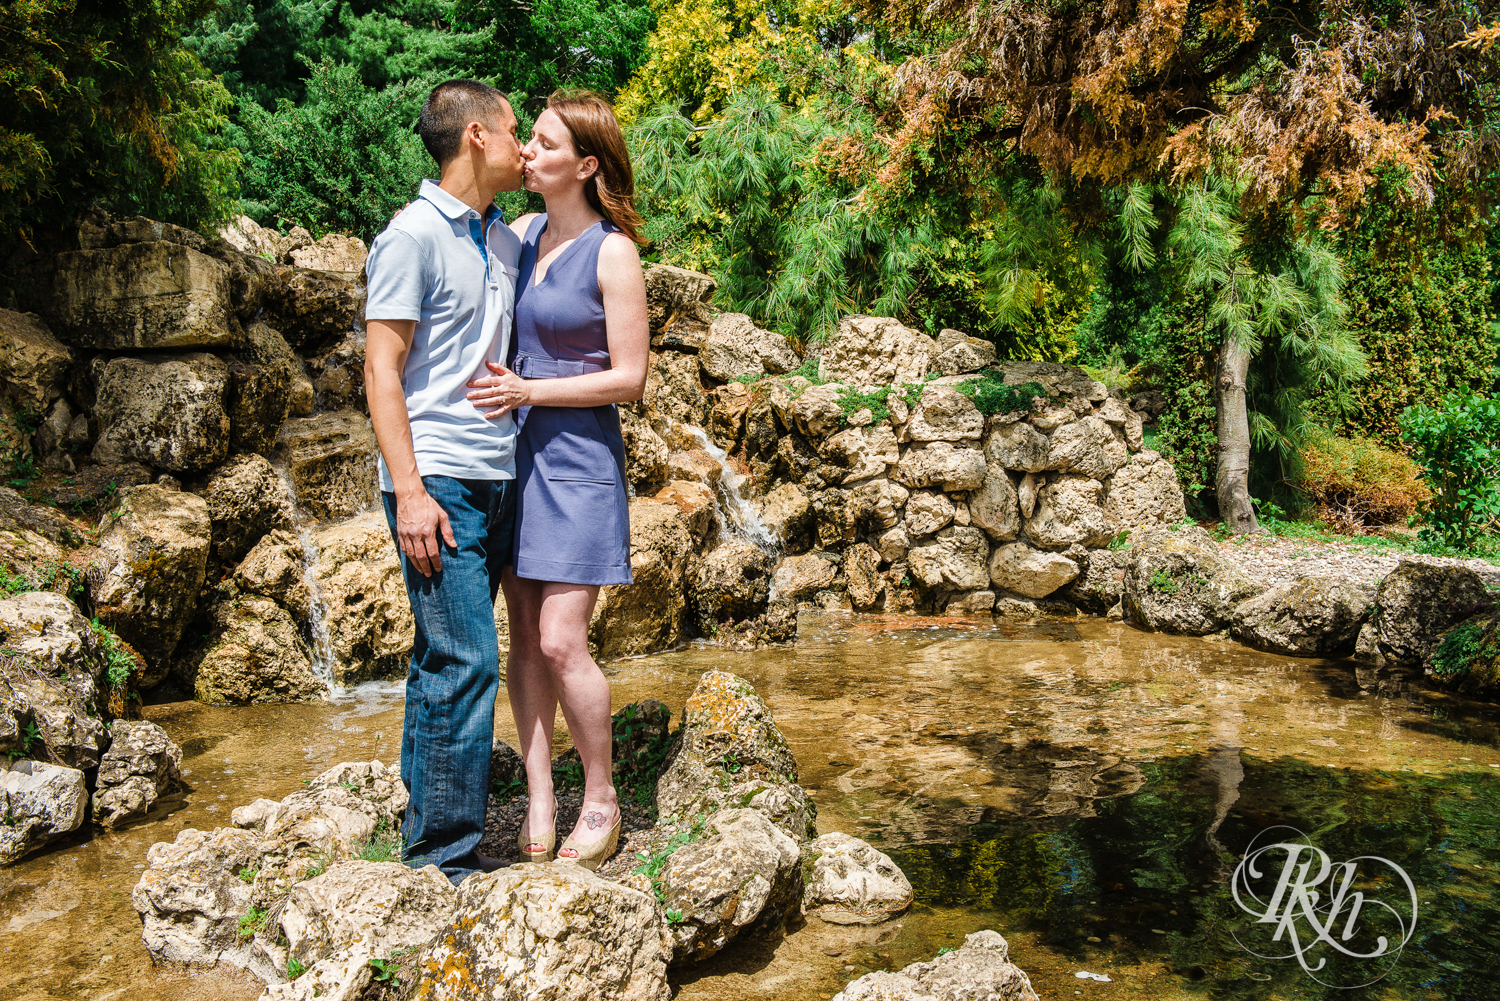 Tess and Eric - Lyndale Rose Garden - Minnesota Engagement Photography - RKH Images  (5 of 12).jpg